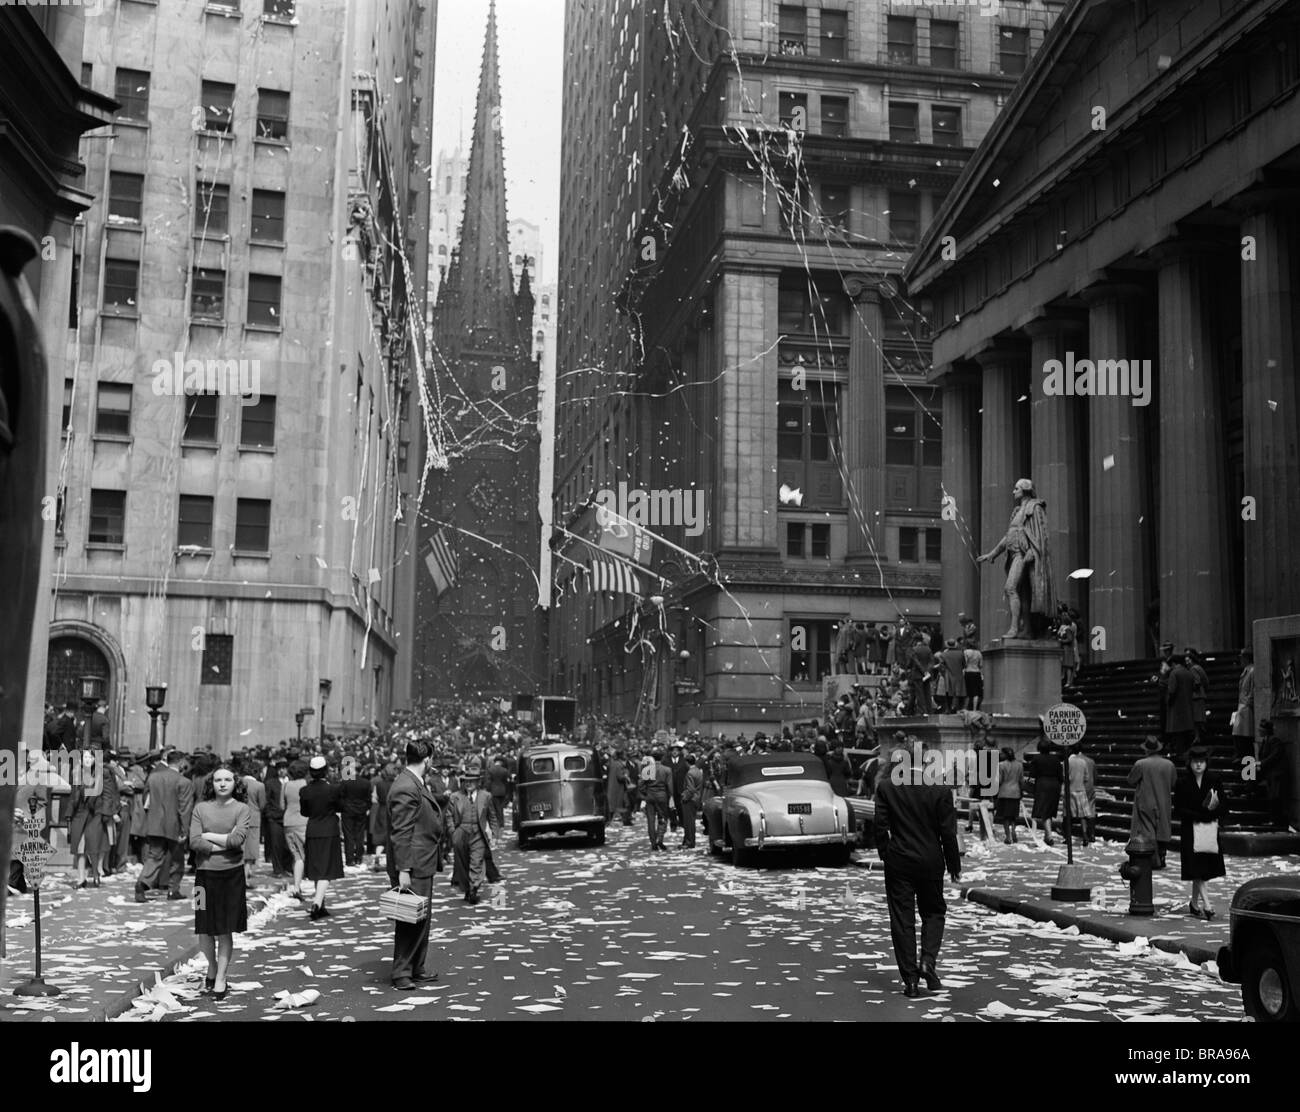 1940s NEW YORK CITY WALL STREET TICKER TAPE PARADE CELEBRATION OF E-E DAY VICTORY IN EUROPE MAY 8 1945 - Stock Image